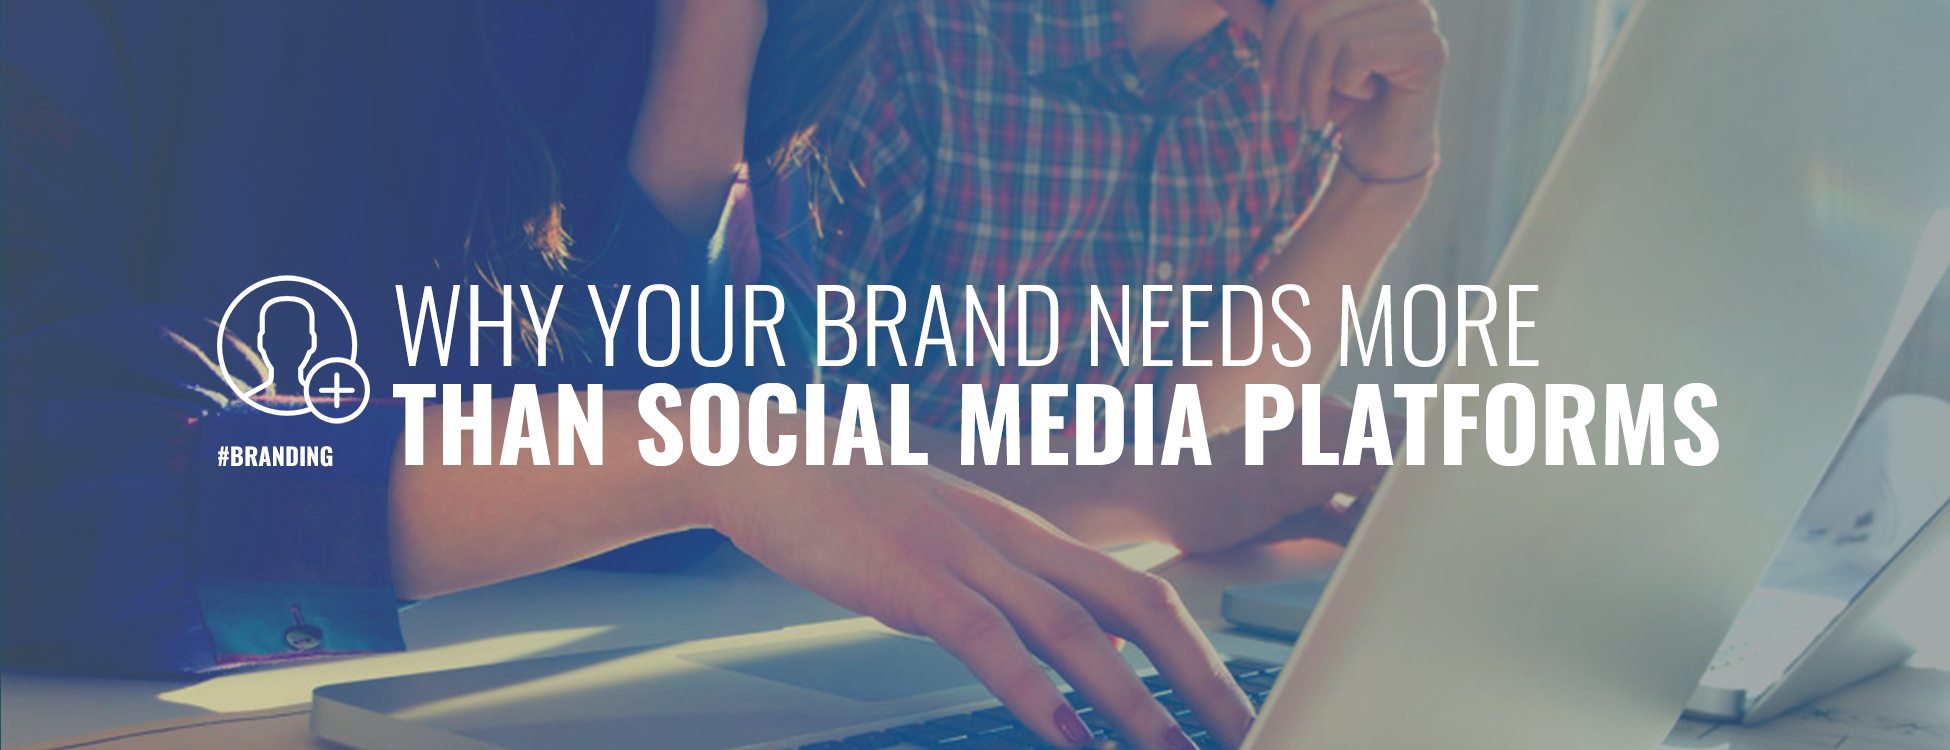 social media platforms brand-needs-more-than-social-media-platforms-insightrix